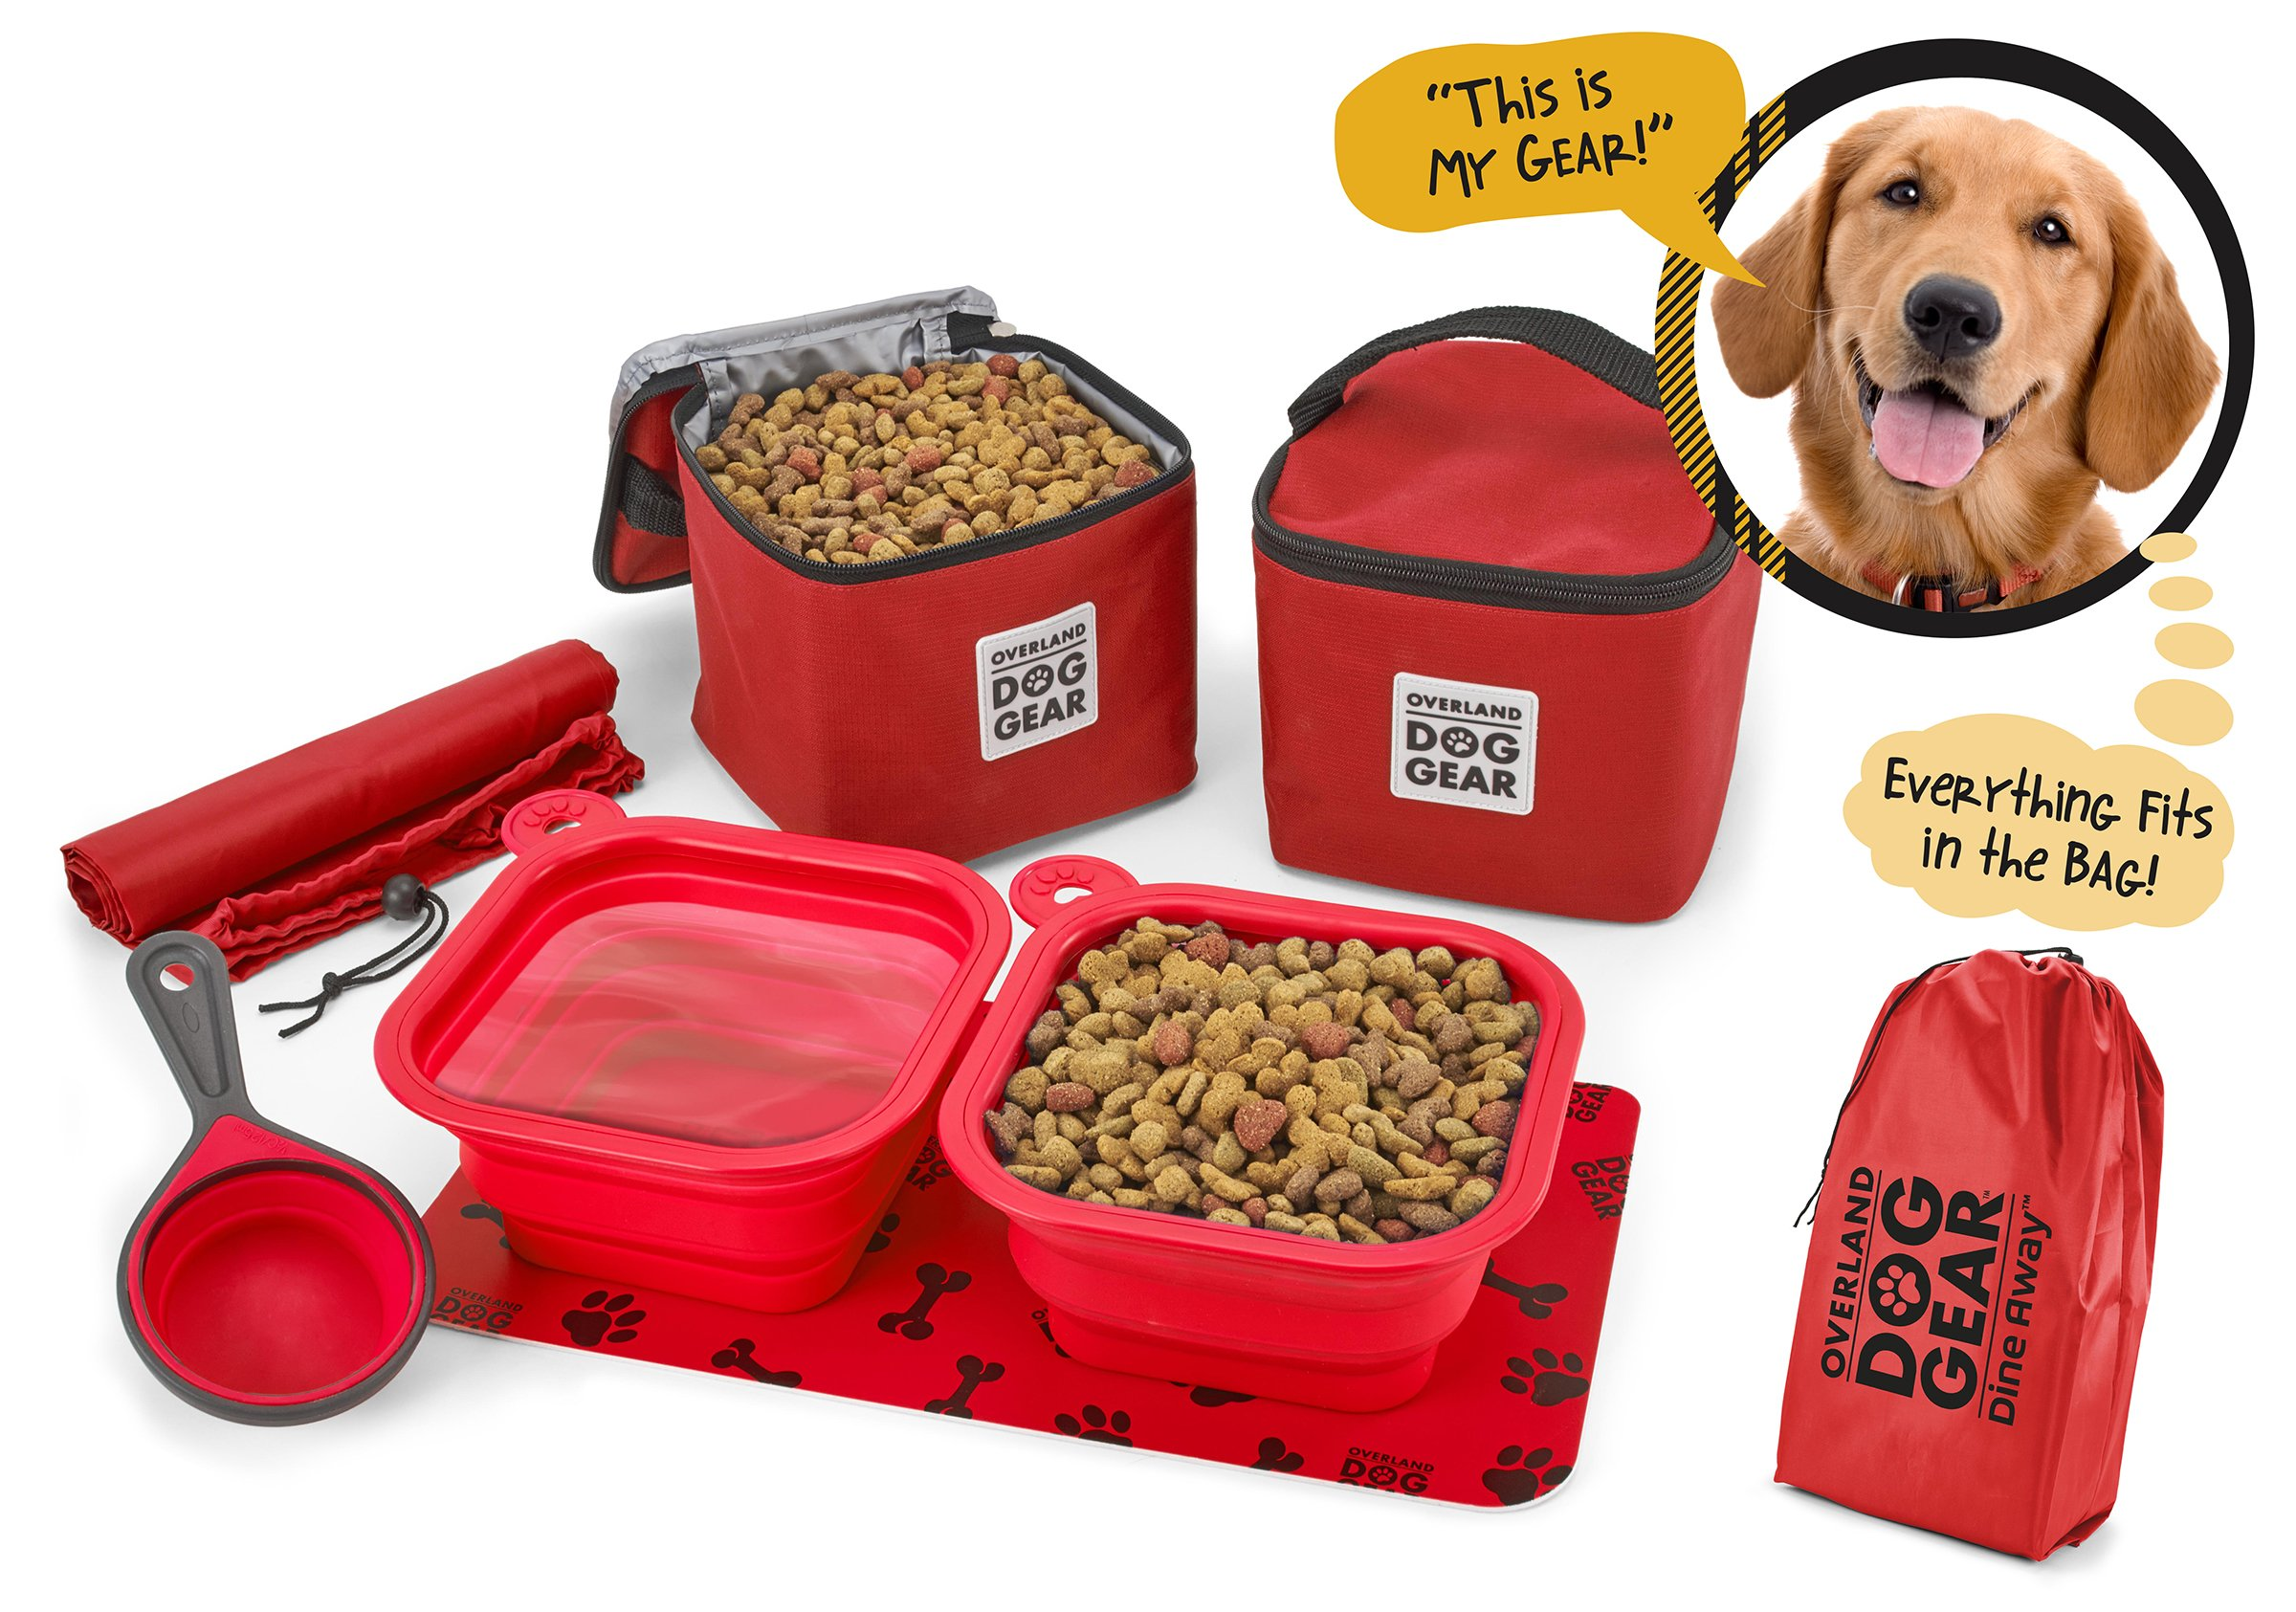 Dog Travel Food Set For Medium + Large Dogs (Red) - 7 Pieces Including Collapsible Bowls, Carriers, Scooper, Place Mat, Bag